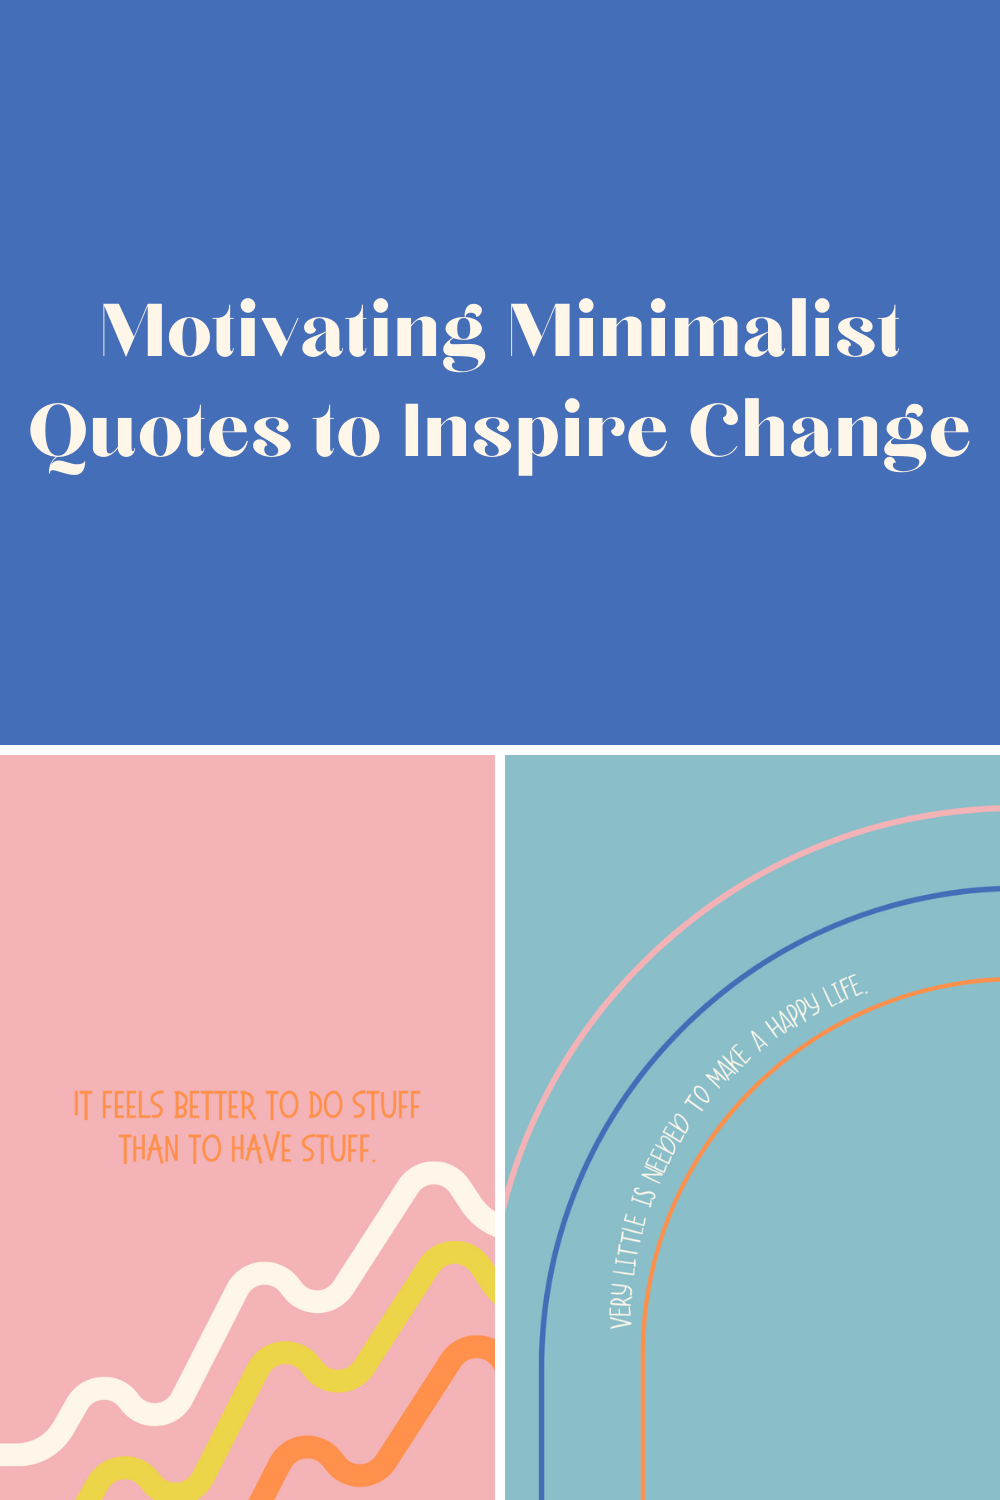 Inspiring Minimalist Quotes For Change